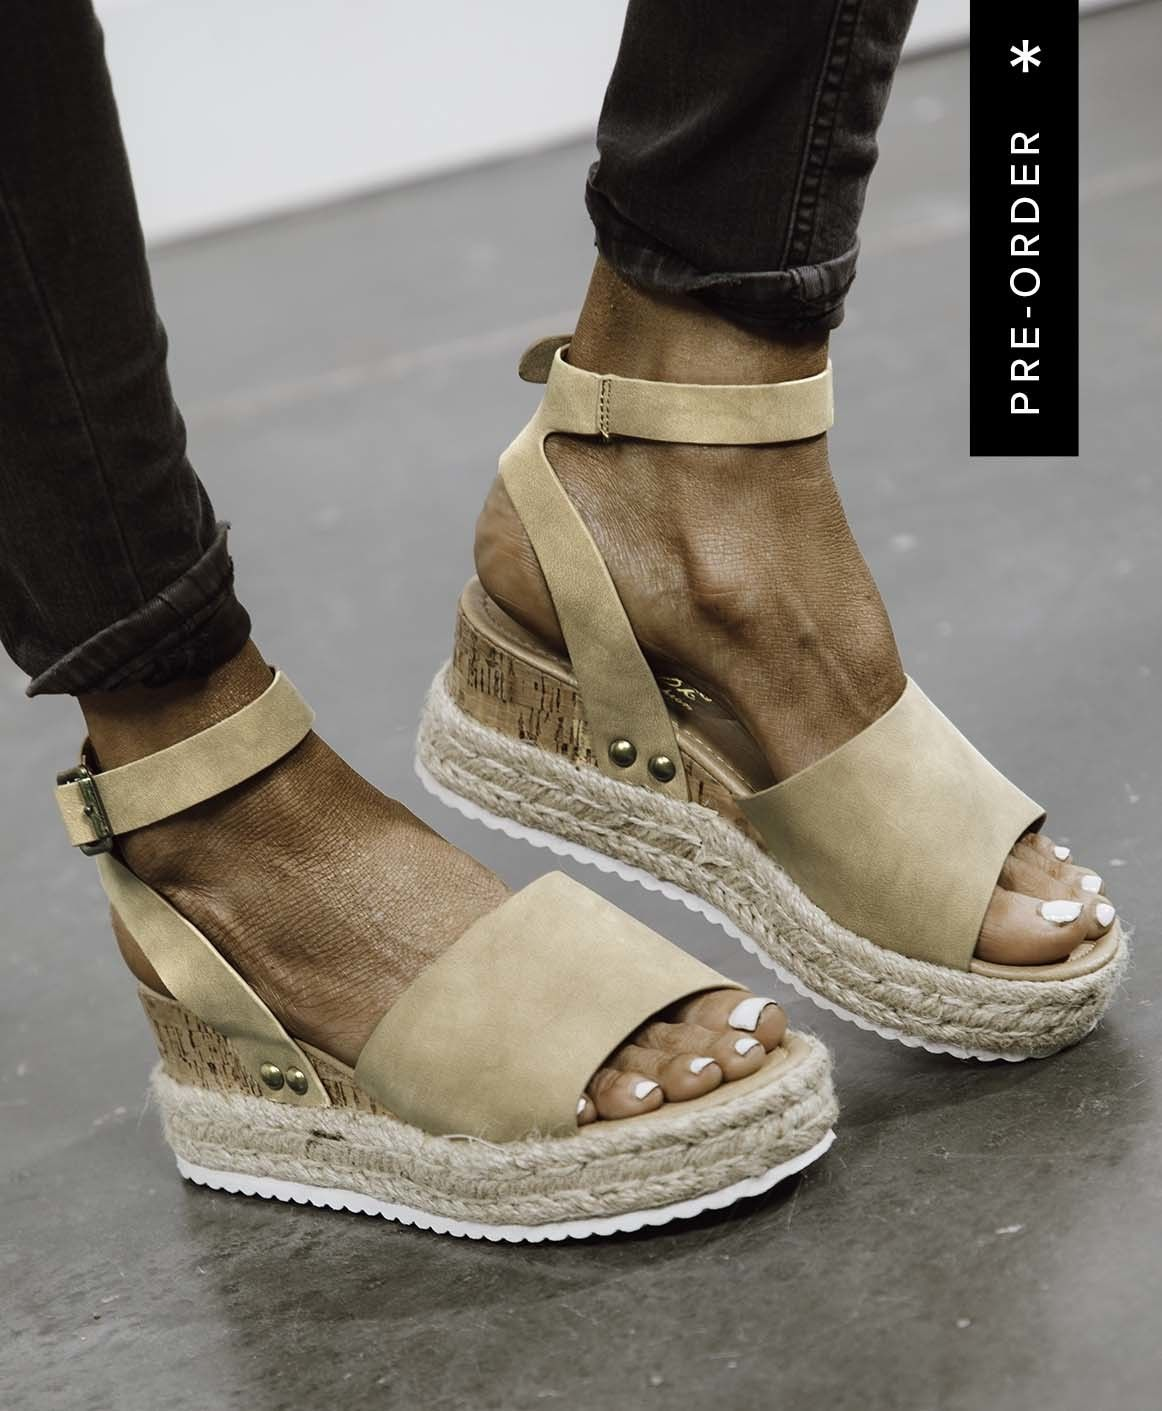 4743d9f27a Josephine Platforms in Taupe (sold out) in 2019 | Shoes shoes shoes ...